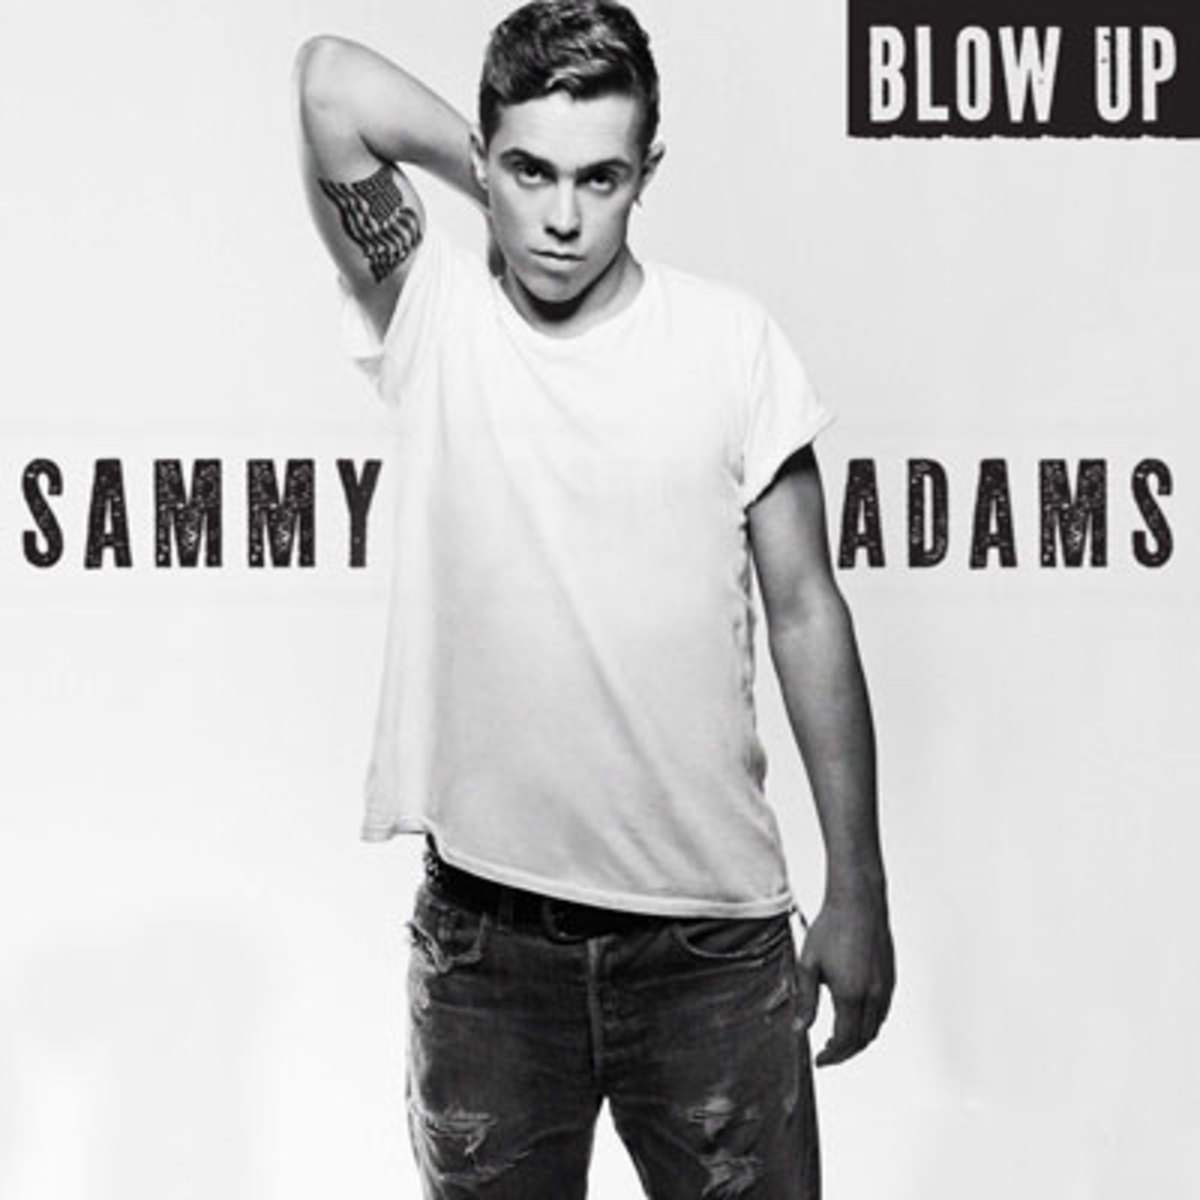 sammyadams-blowup.jpg